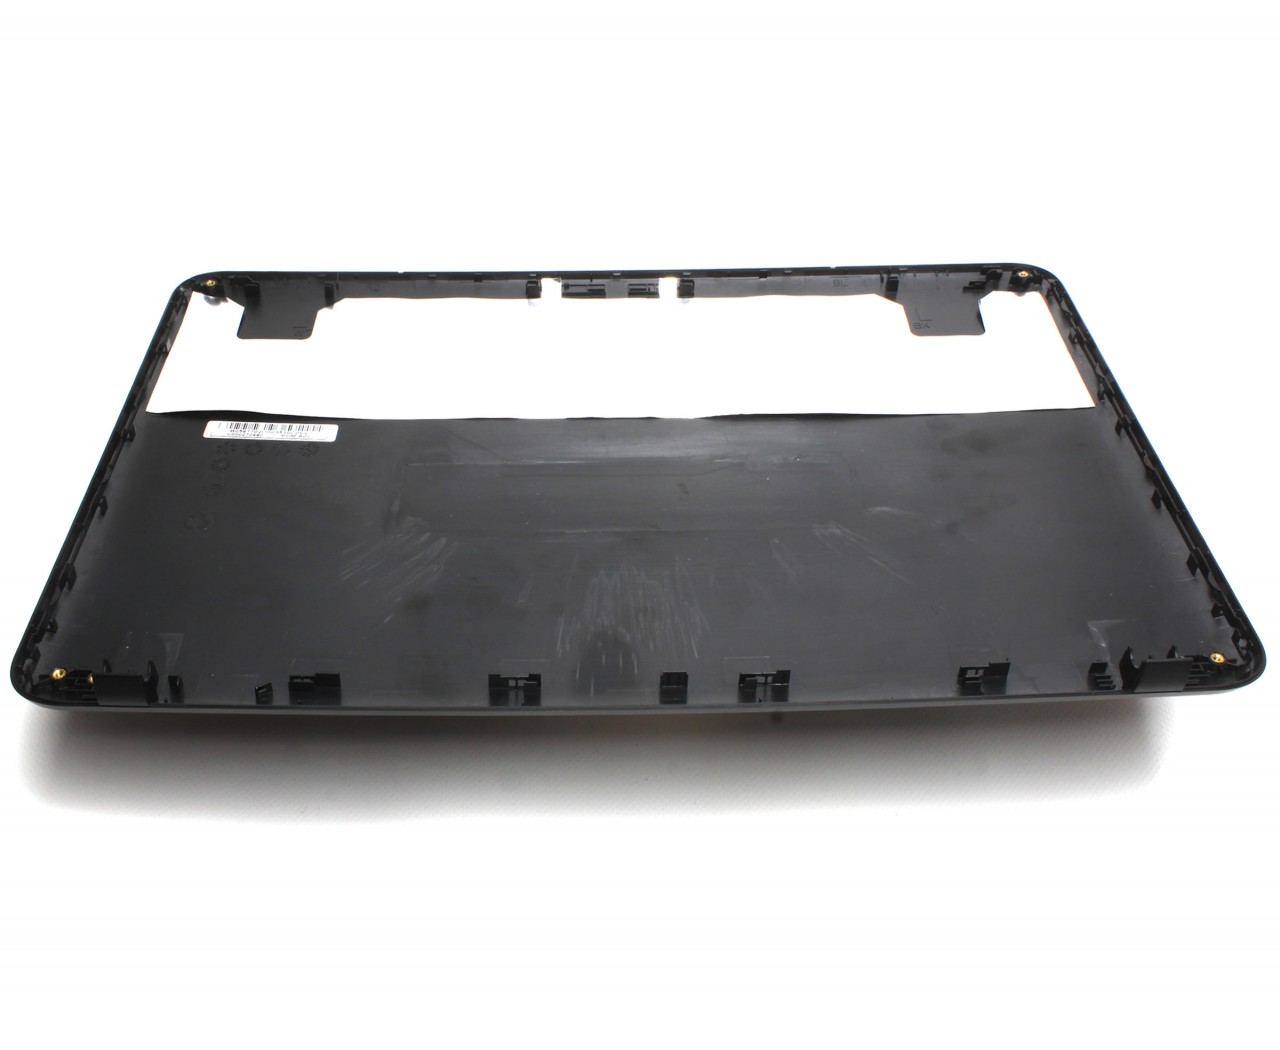 Capac Display BackCover Toshiba Satellite L850 Carcasa Display Neagra cu 2 Suruburi Balamale imagine powerlaptop.ro 2021